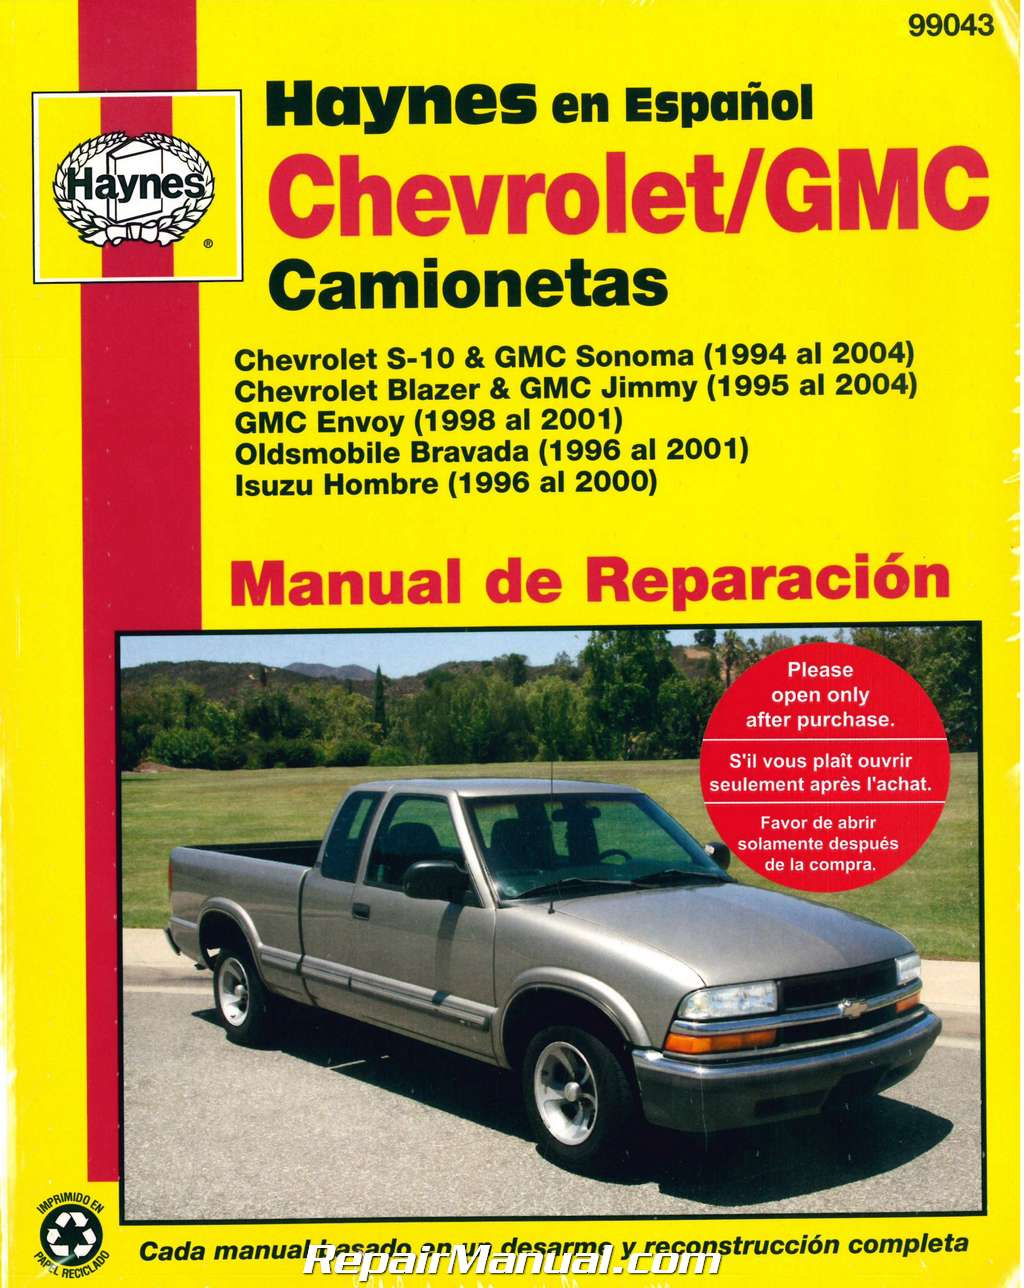 chevy s 10 gmc sonoma pick ups 1994 2004 repair manual espanol spanish rh repairmanual com 1998 gmc jimmy repair manual free download 97 GMC Jimmy Manual